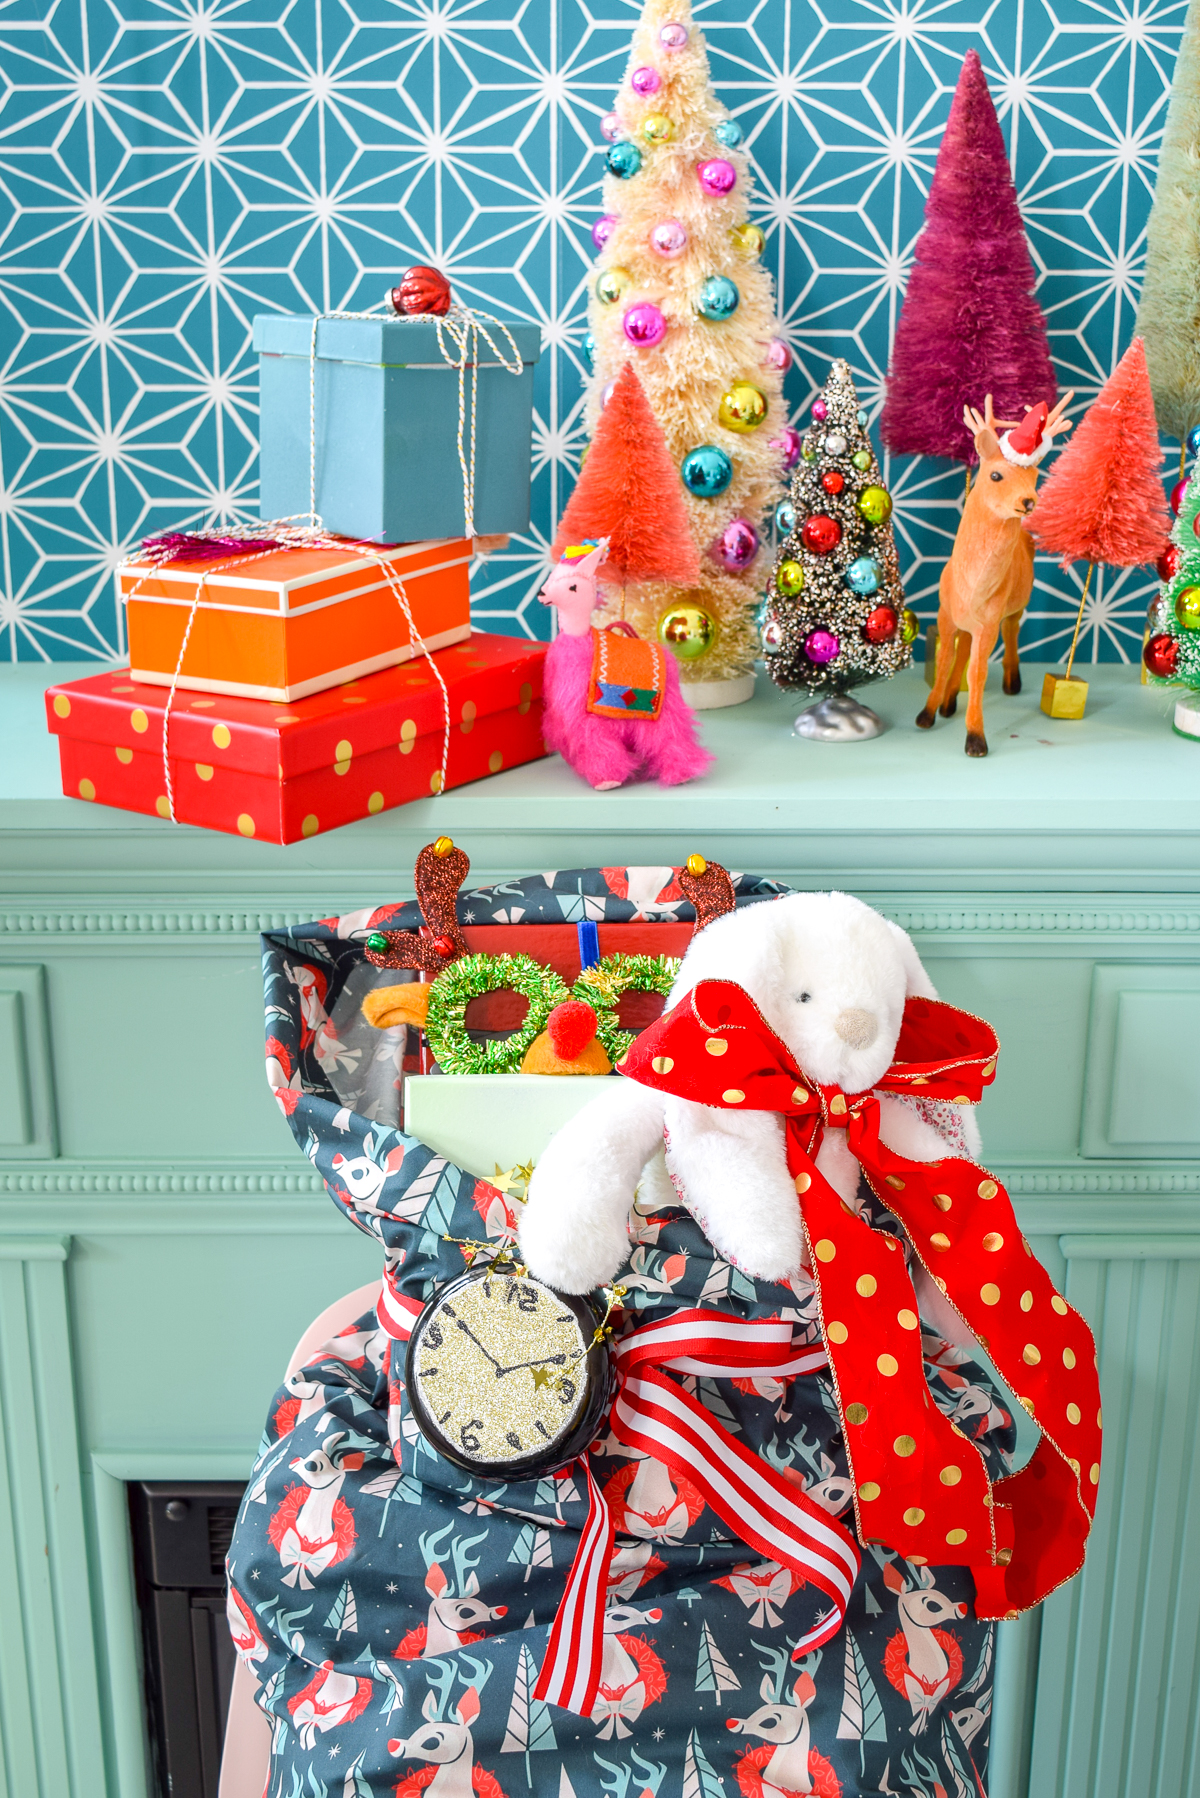 Spread Christmas Cheer with DIY Santa Sacks | Spoonflower Blog